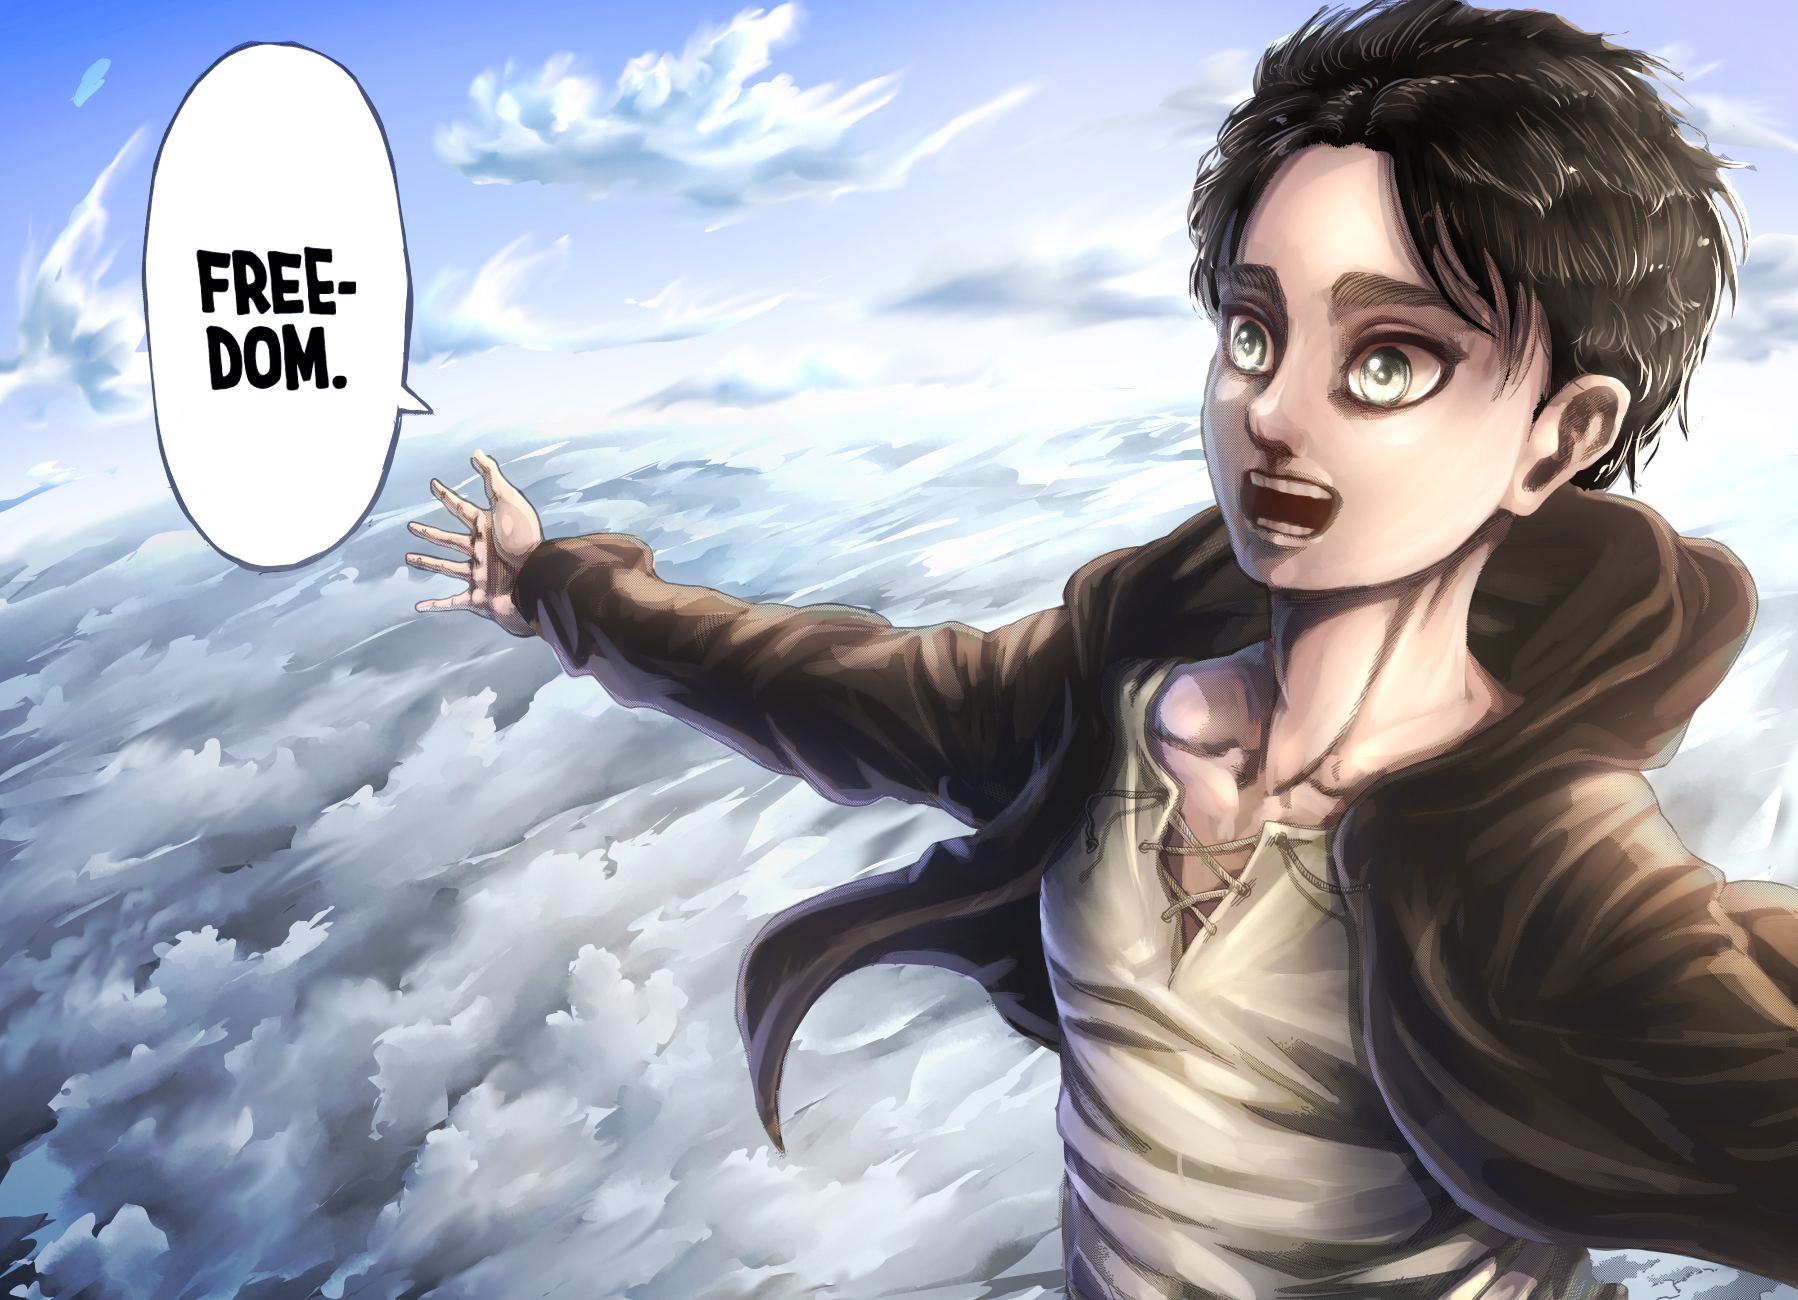 Pin By Erenyeagerlover On Eren Yeager Jeager Board 2 In 2020 Attack On Titan Anime Attack On Titan Eren Attack On Titan Fanart